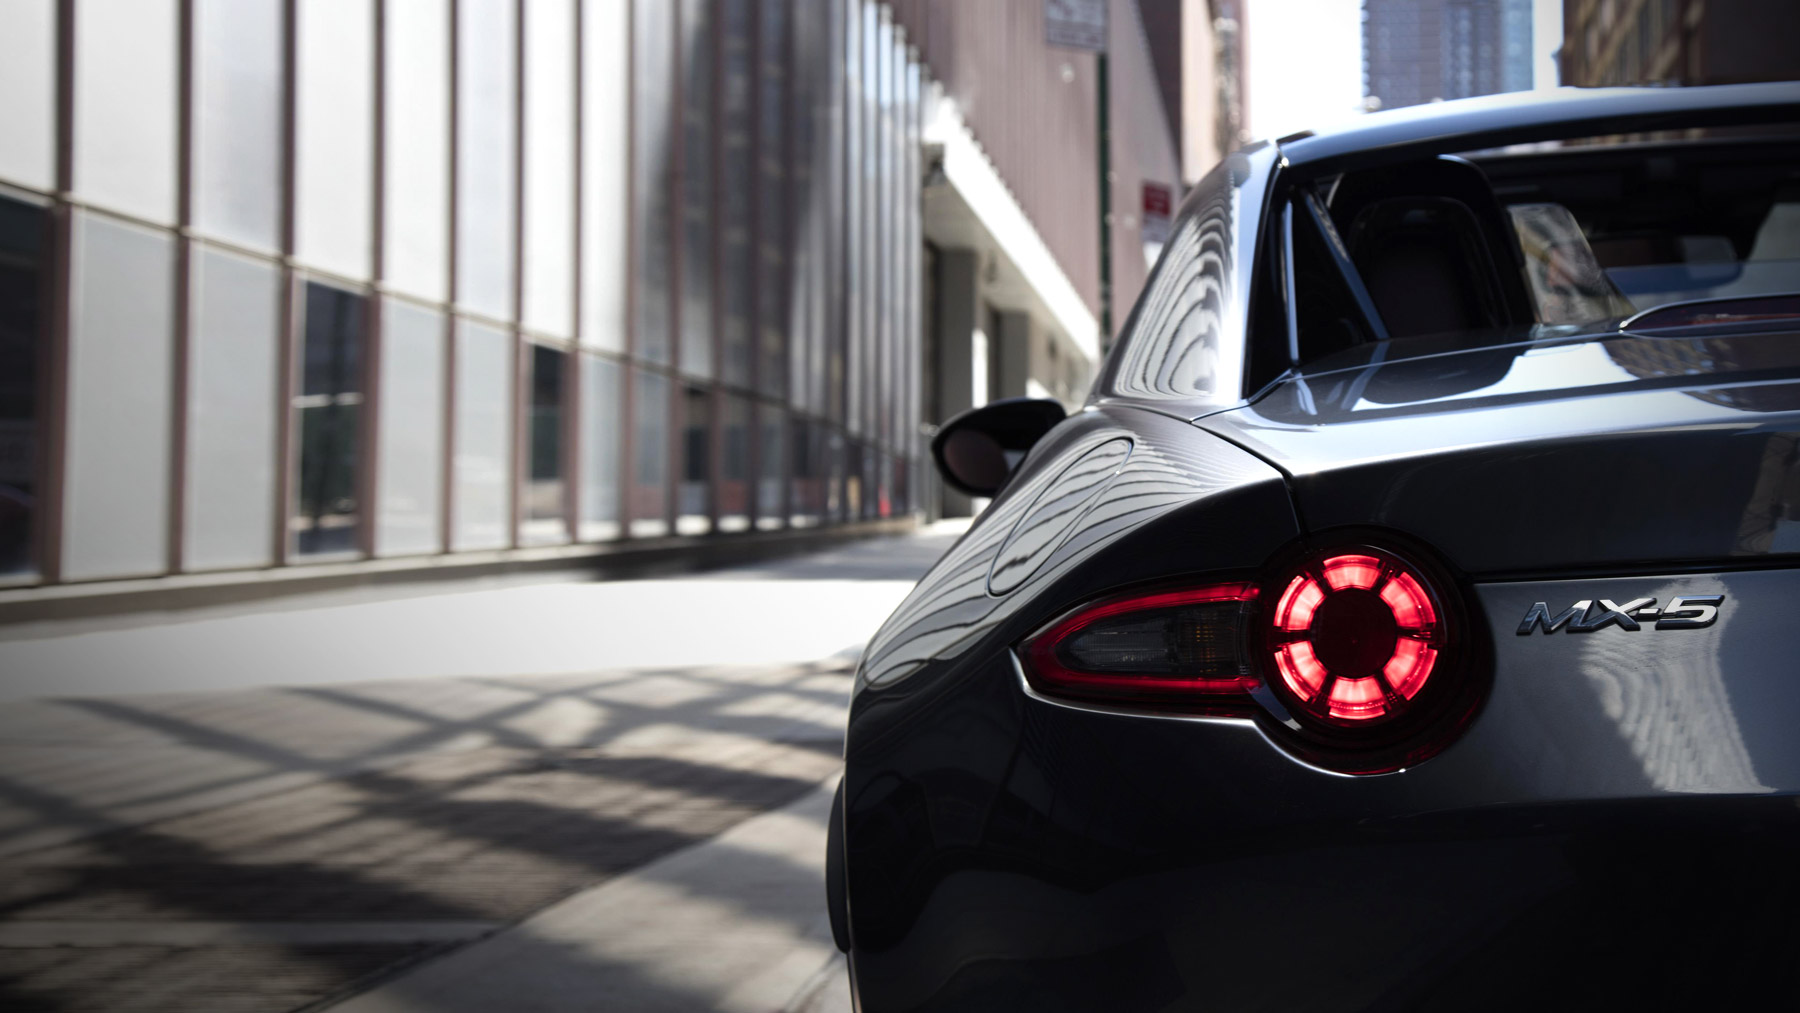 2017 Mazda MX-5 Miata RF Club Taillight Rear Exterior